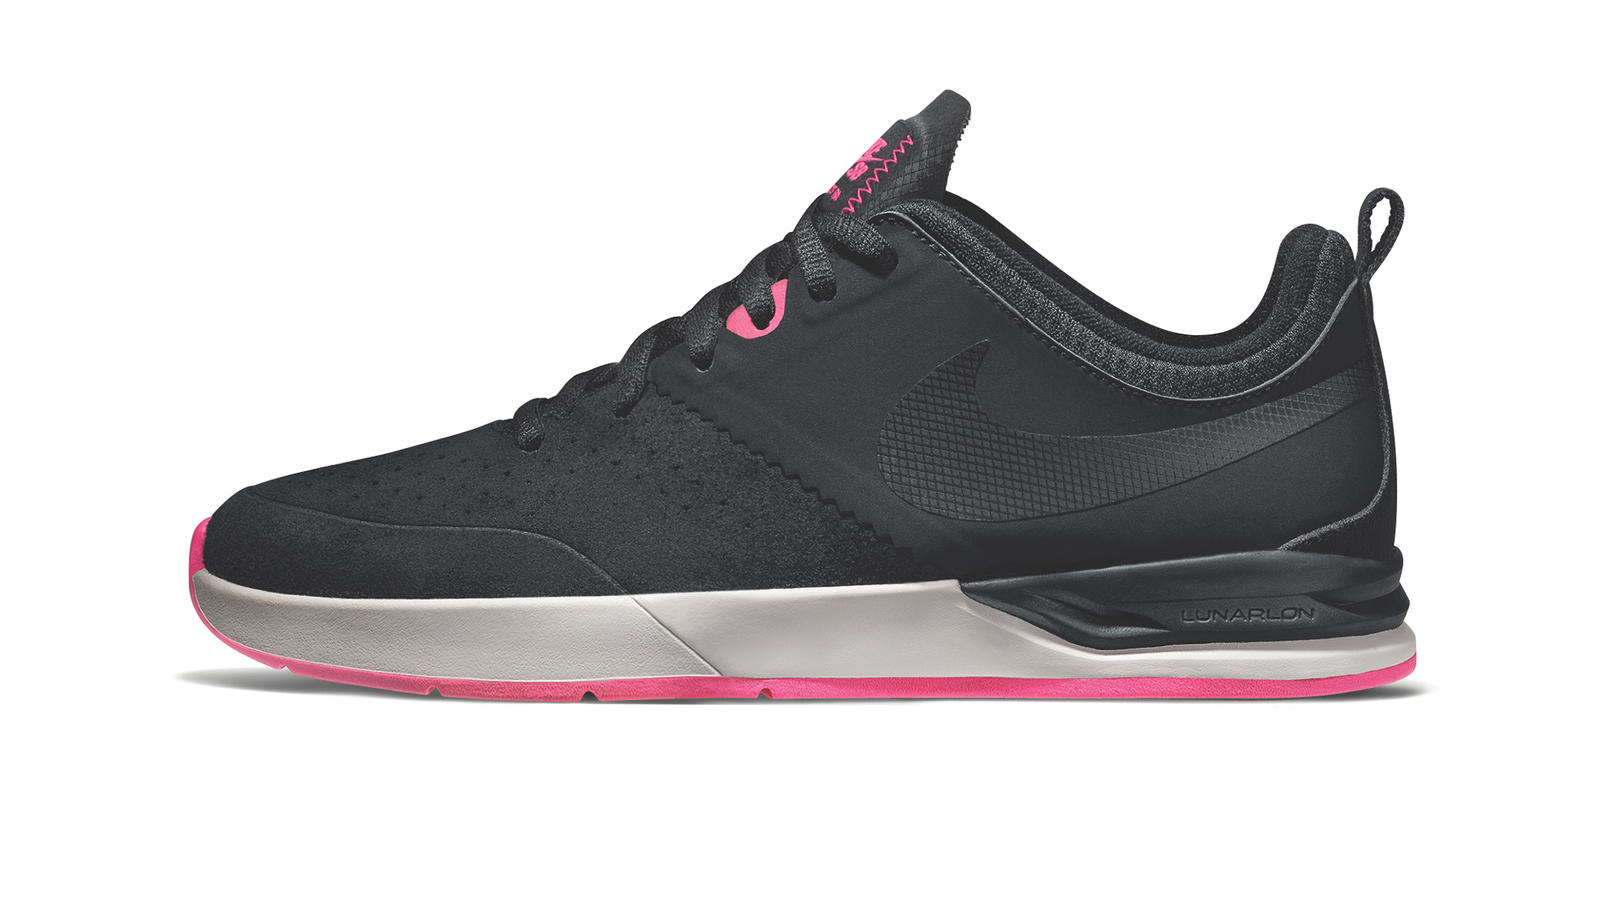 25e67b1dd1af Nike SB Project BA  Shoes for Skaters by Skaters - Nike News